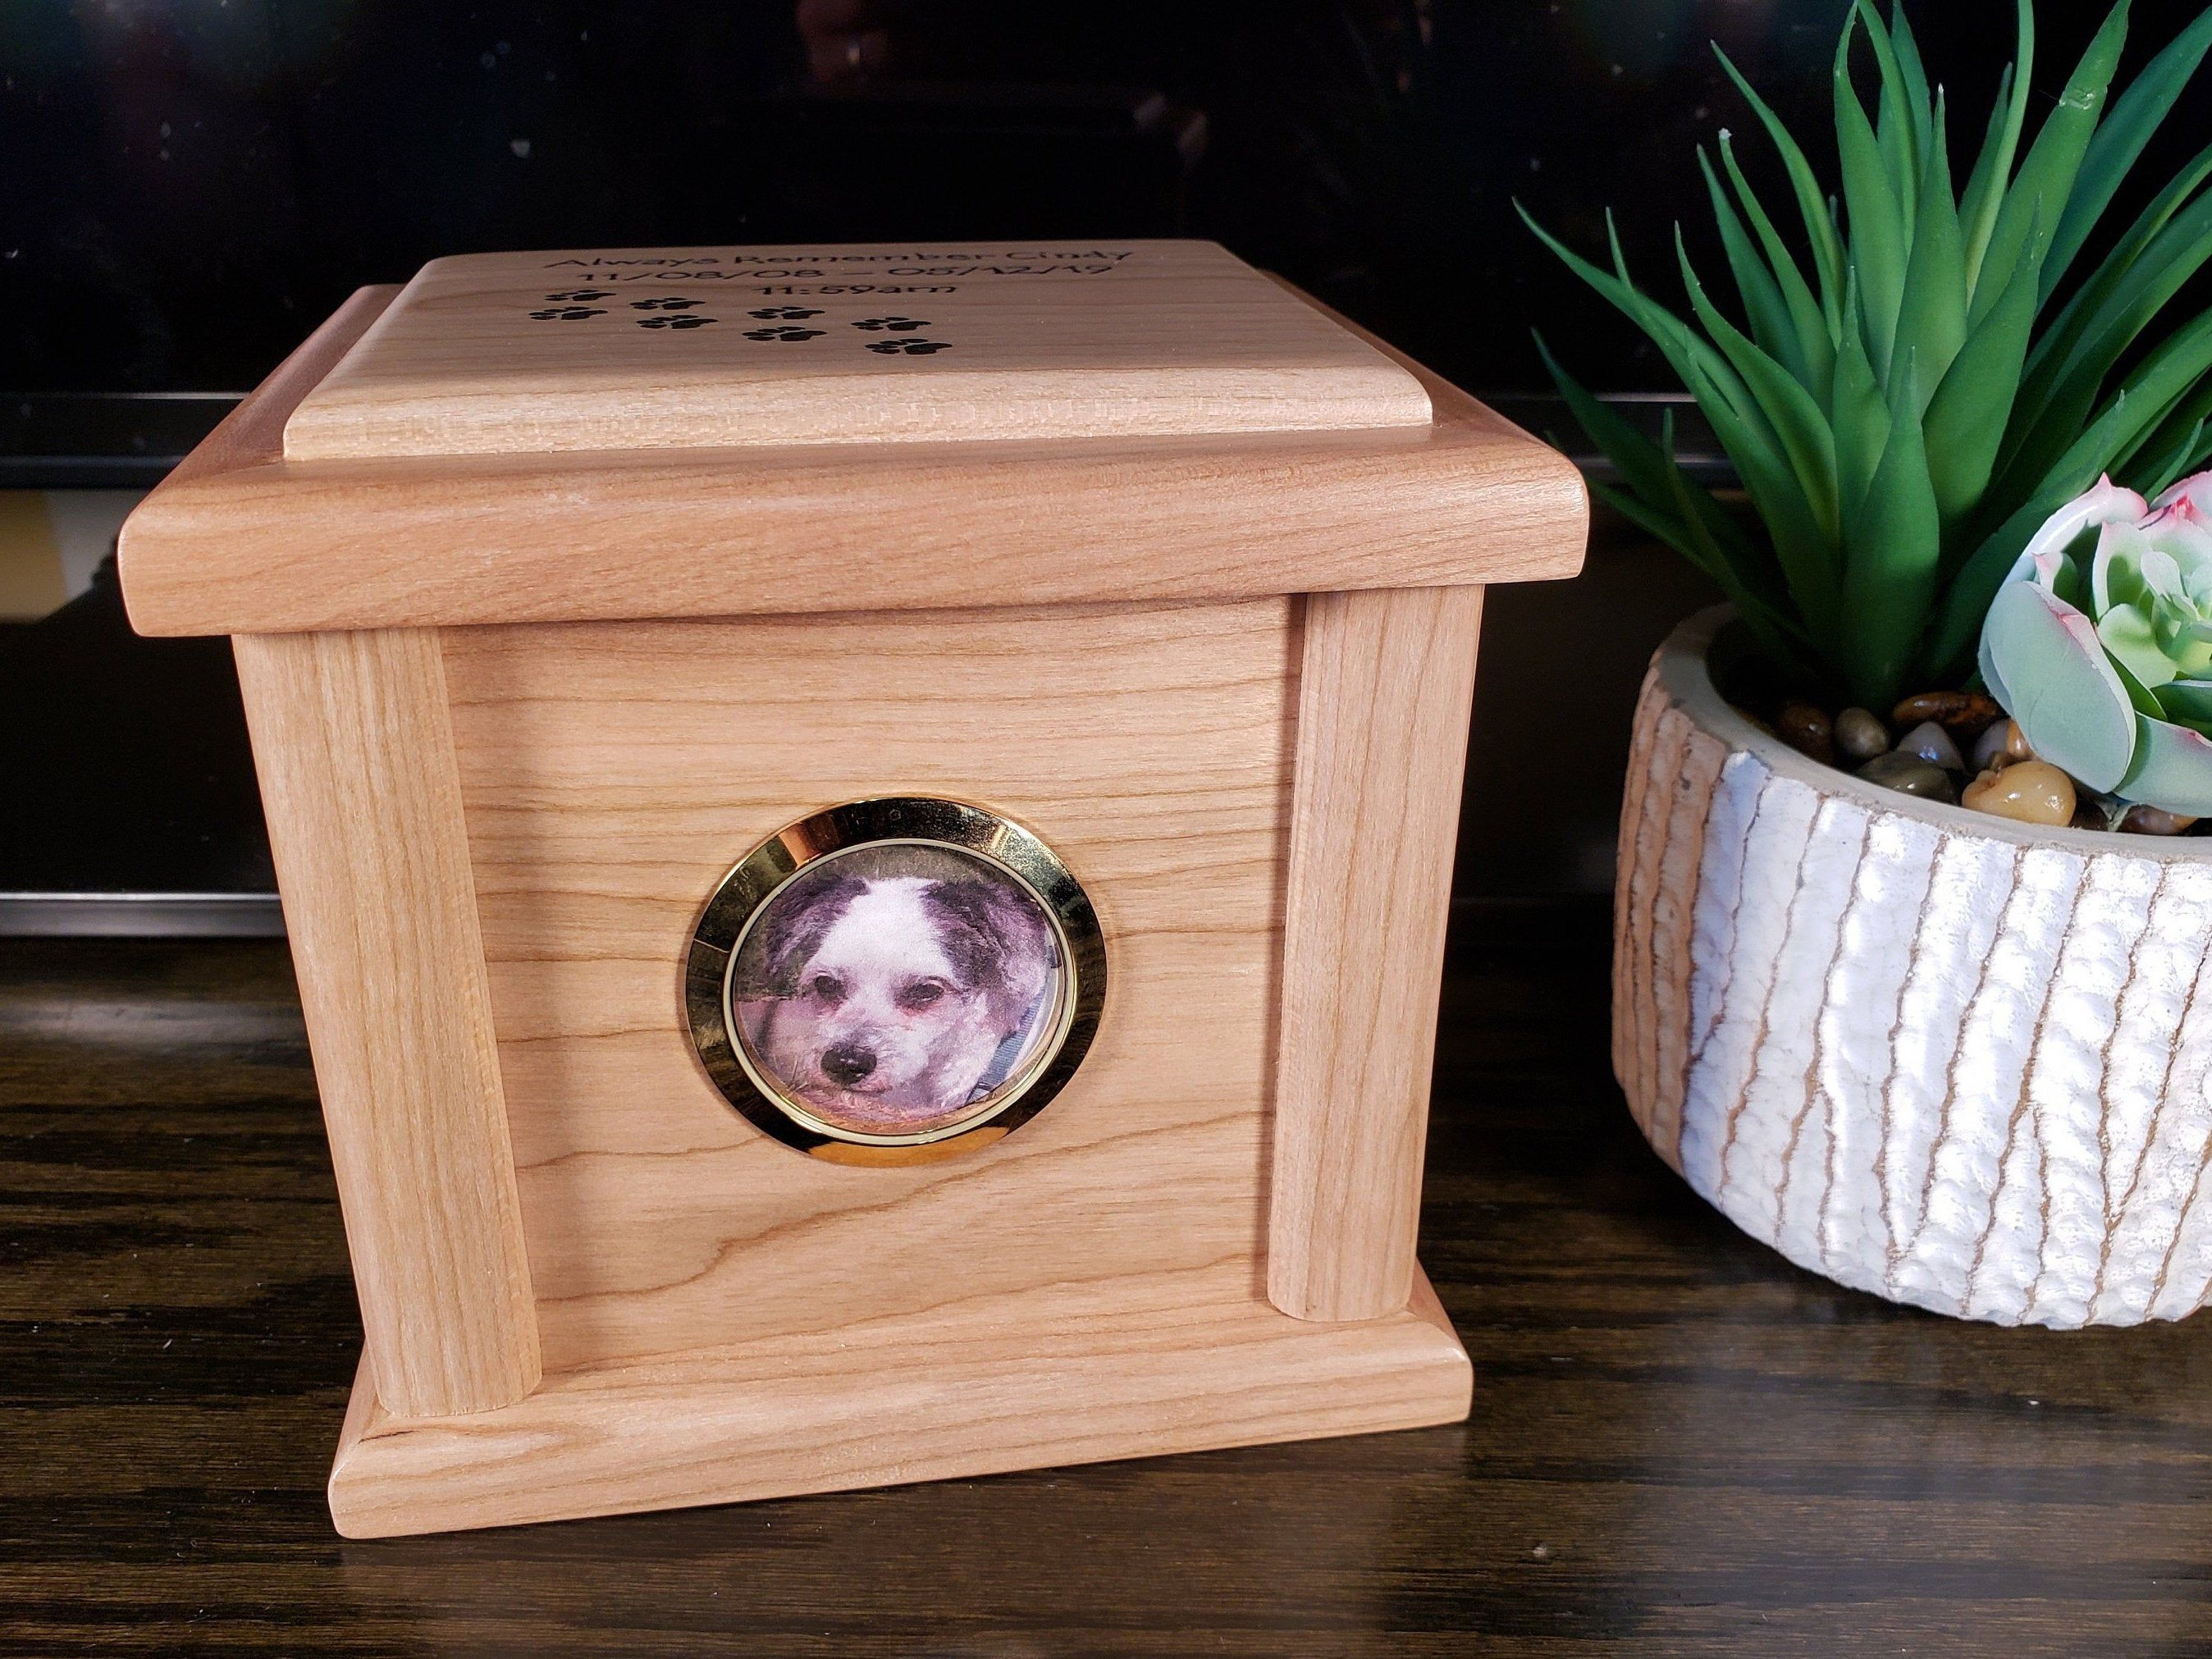 Pet cremation urn from solid wood styled like a pet